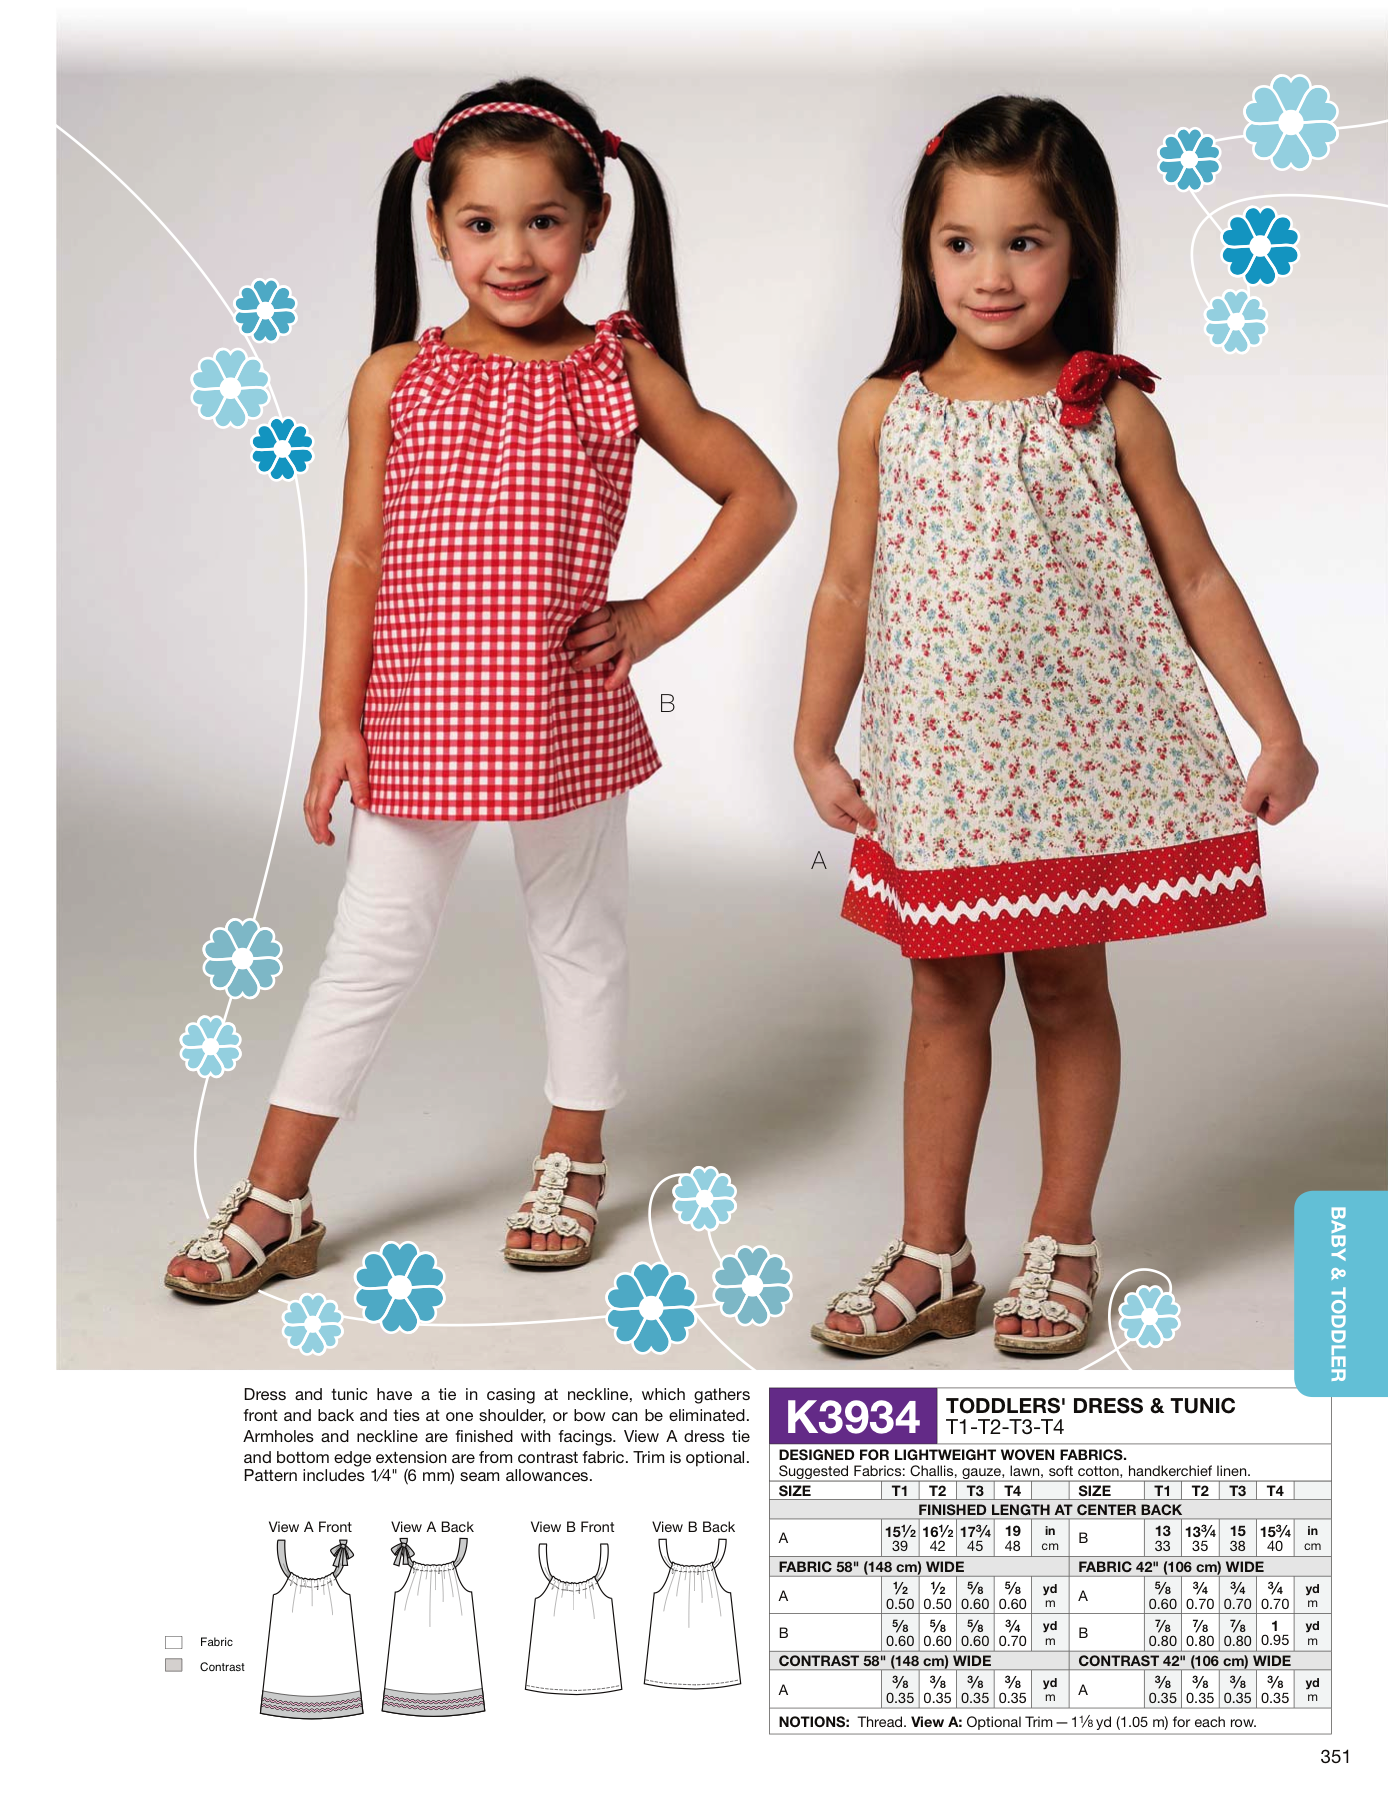 K3934 Toddlers' Dress & Tunic